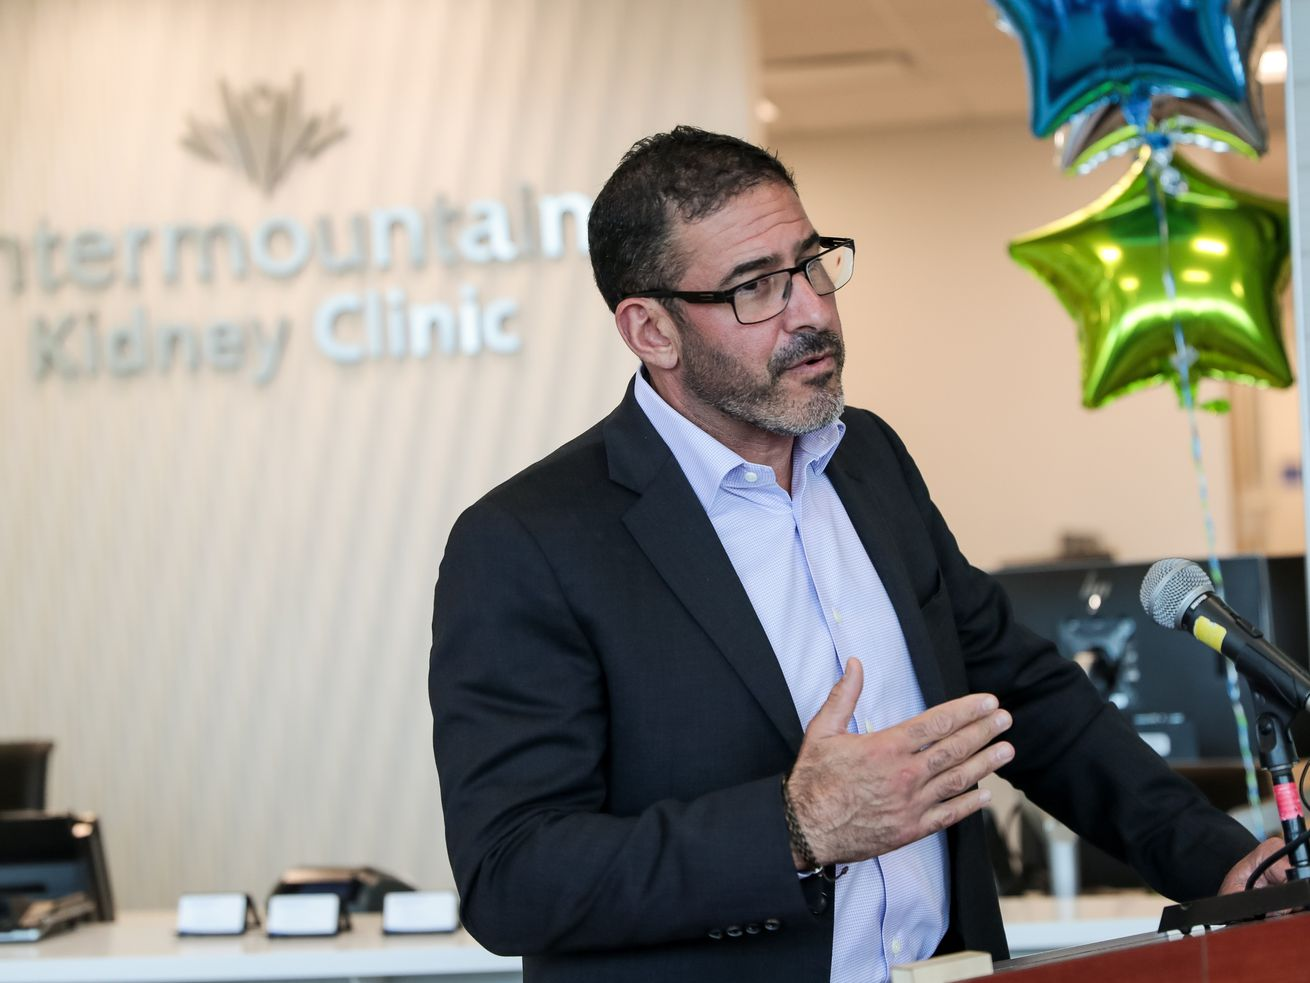 Intermountain Healthcare president addresses reports of possible pay cuts